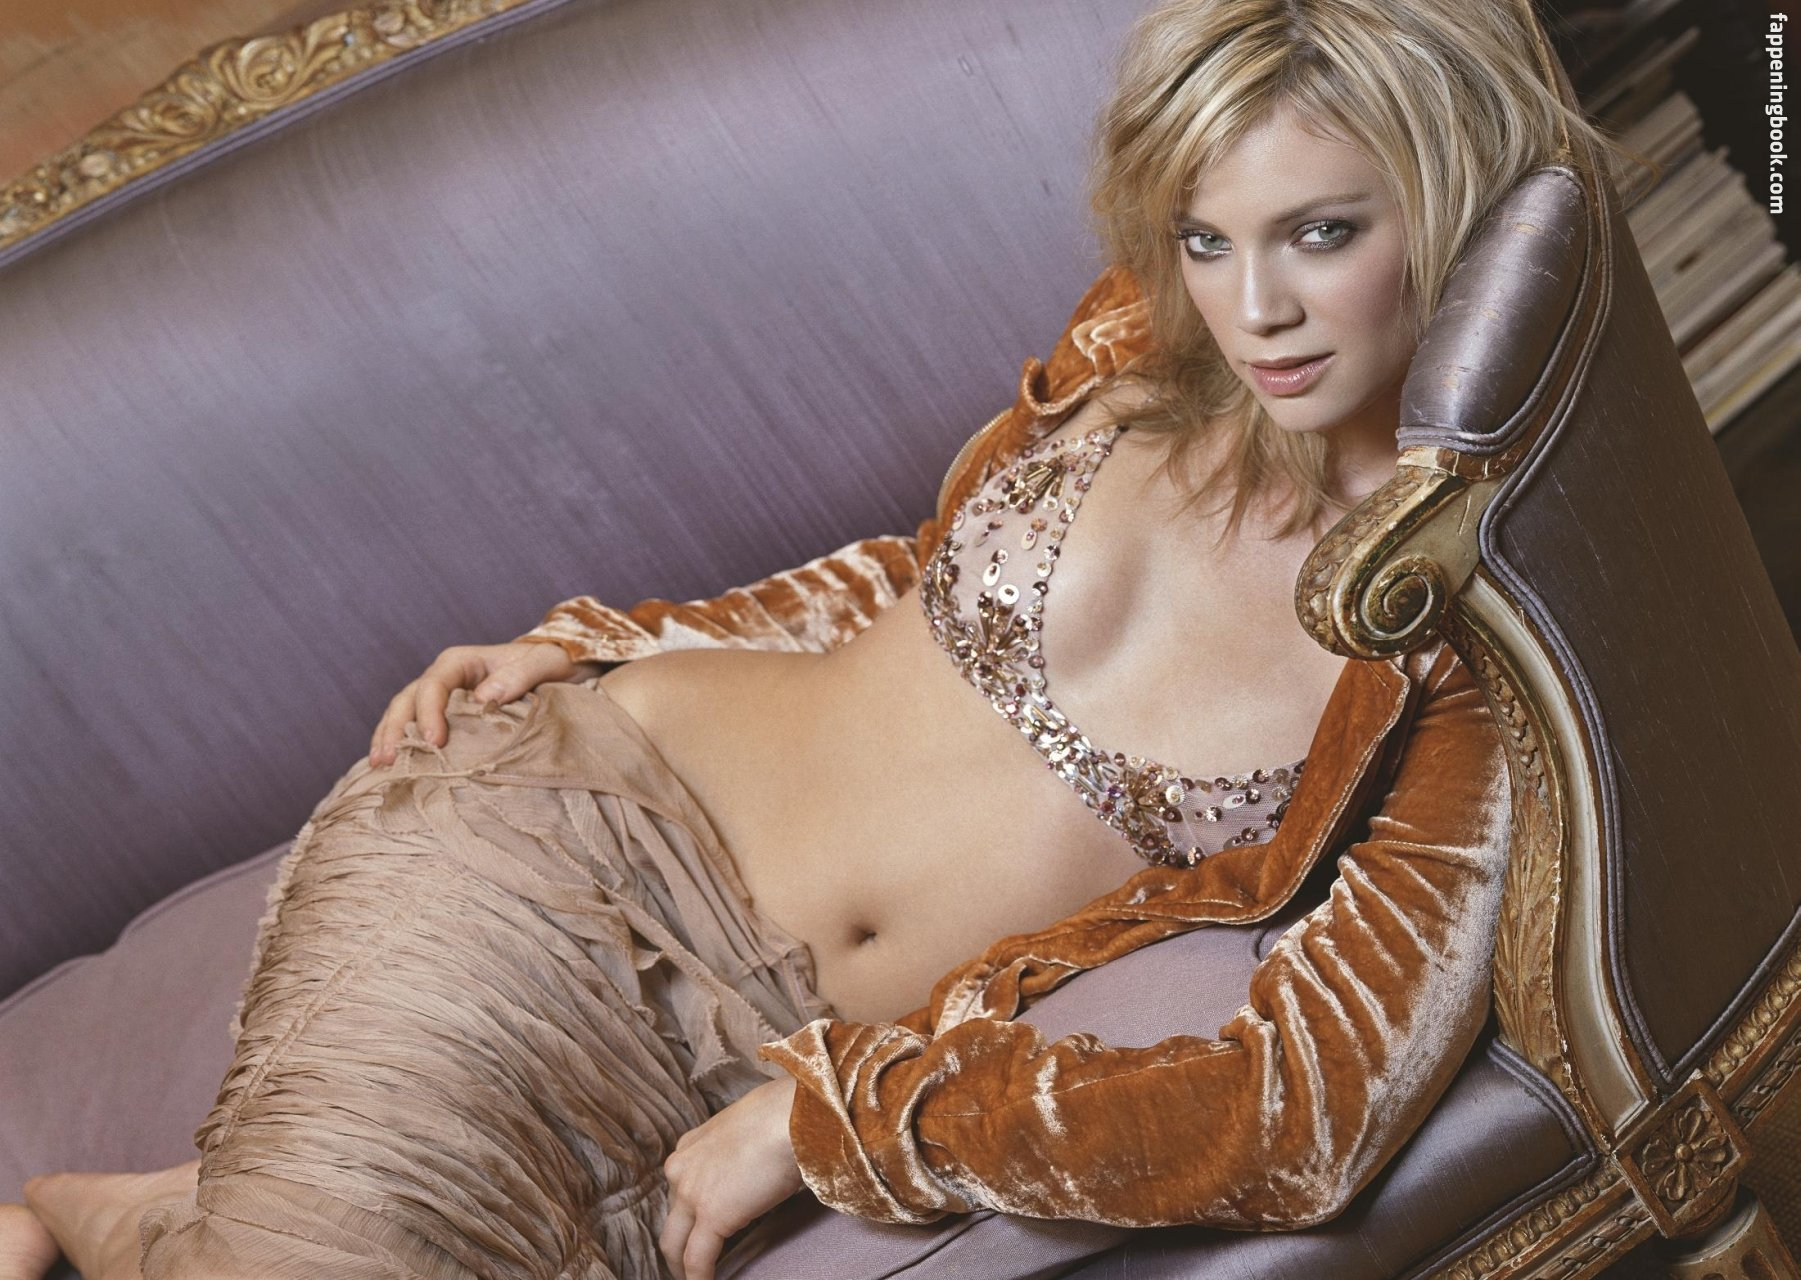 Amy Smart Nude Pictures amy smart nude, sexy, the fappening, uncensored - photo